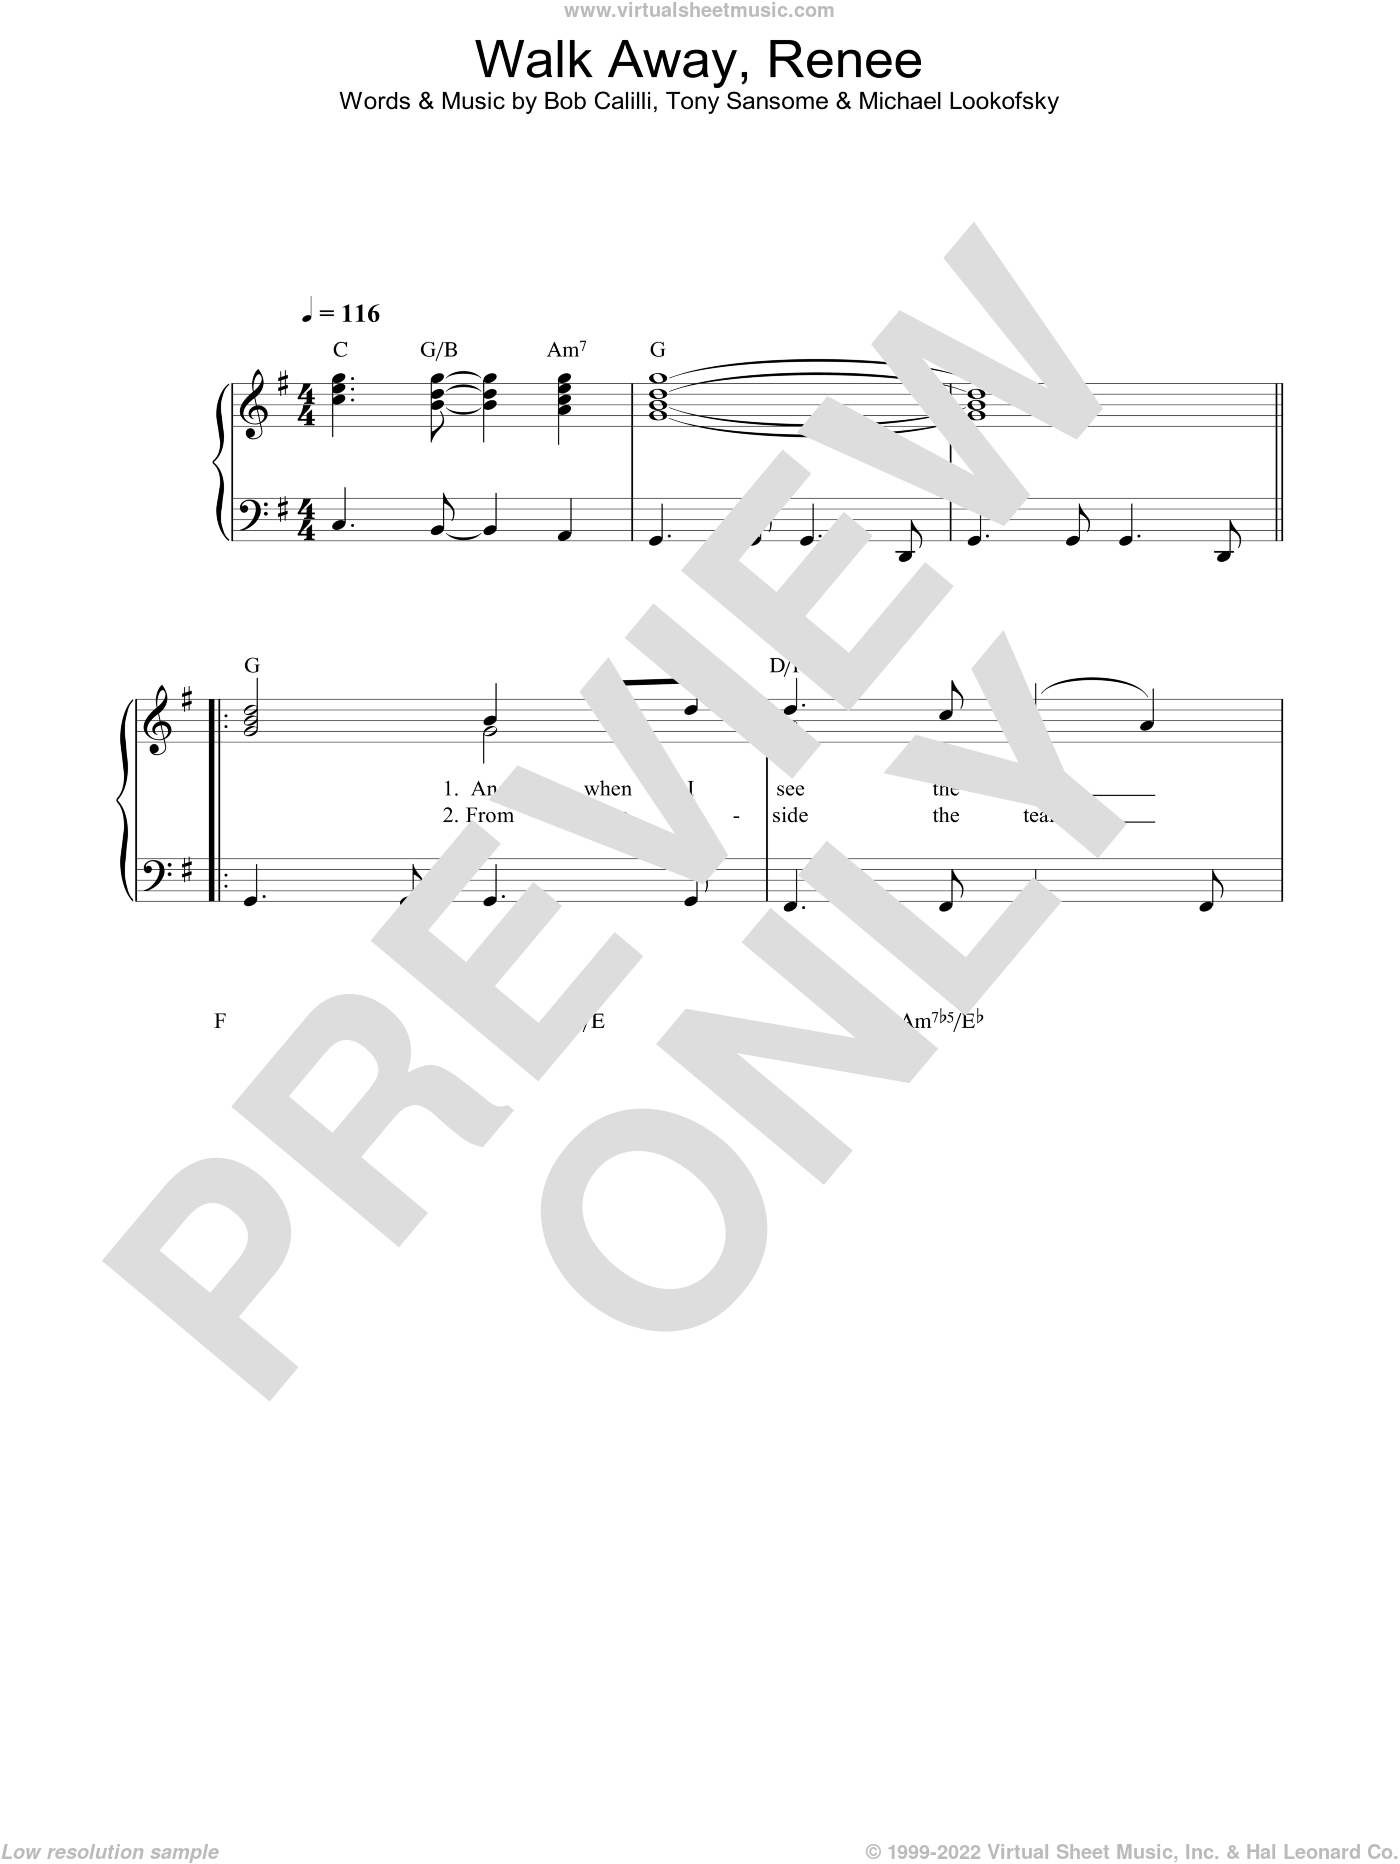 Walk Away, Renee sheet music for voice, piano or guitar by The Four Tops, Bob Calilli, Michael Lookofsky and Tony Sansome, intermediate skill level